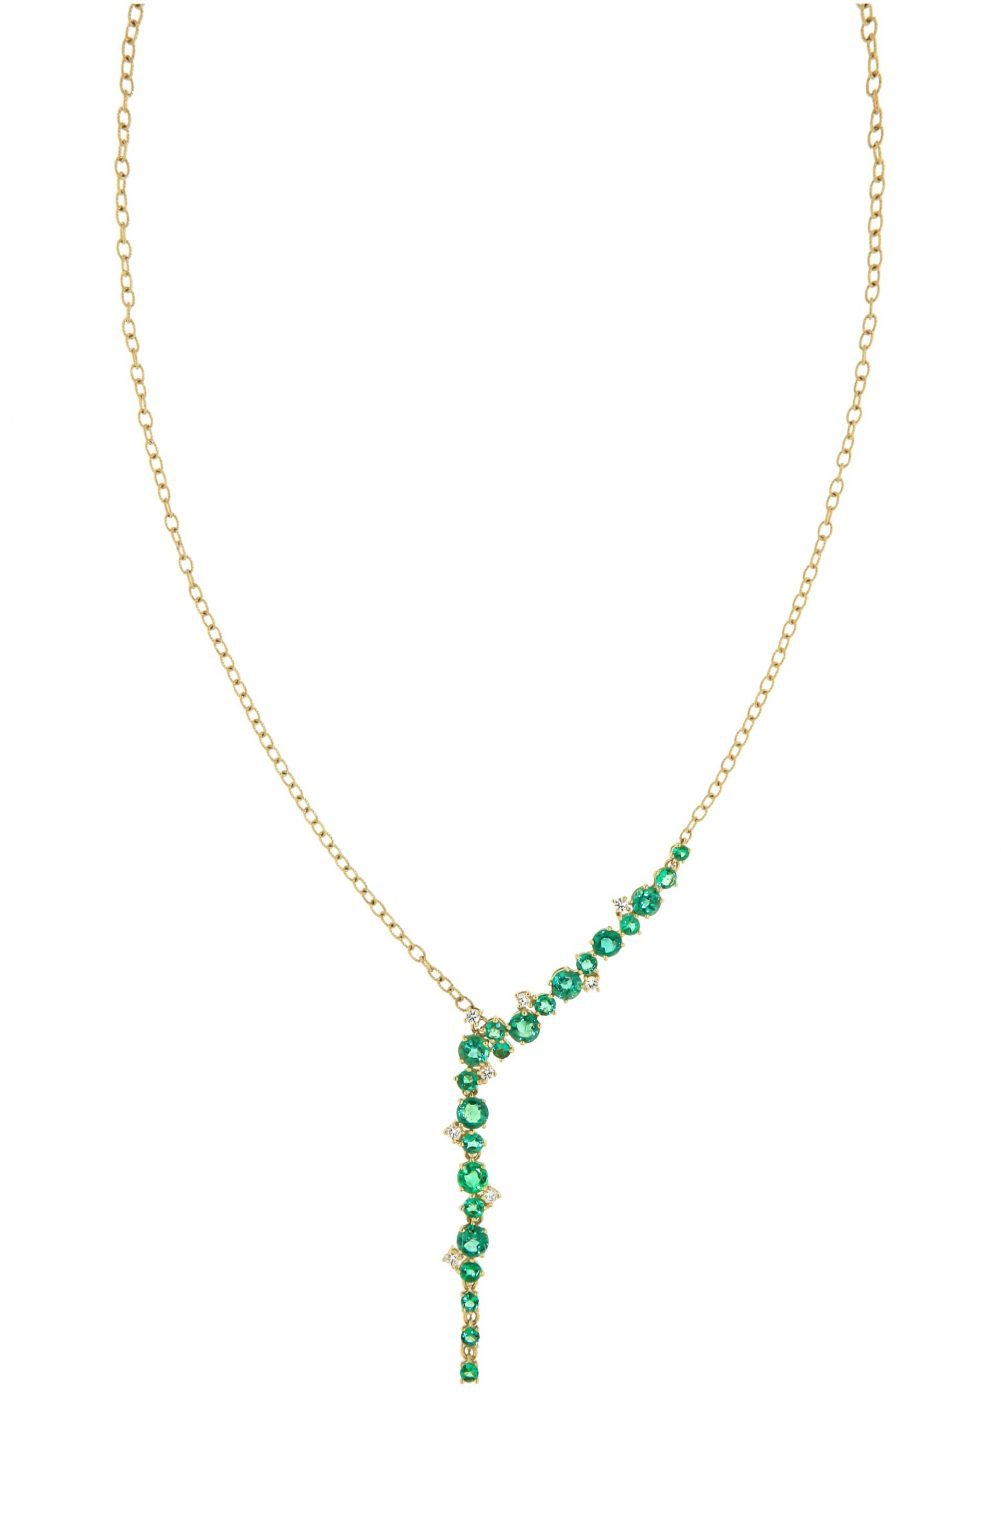 yellow gold necklace with emeralds